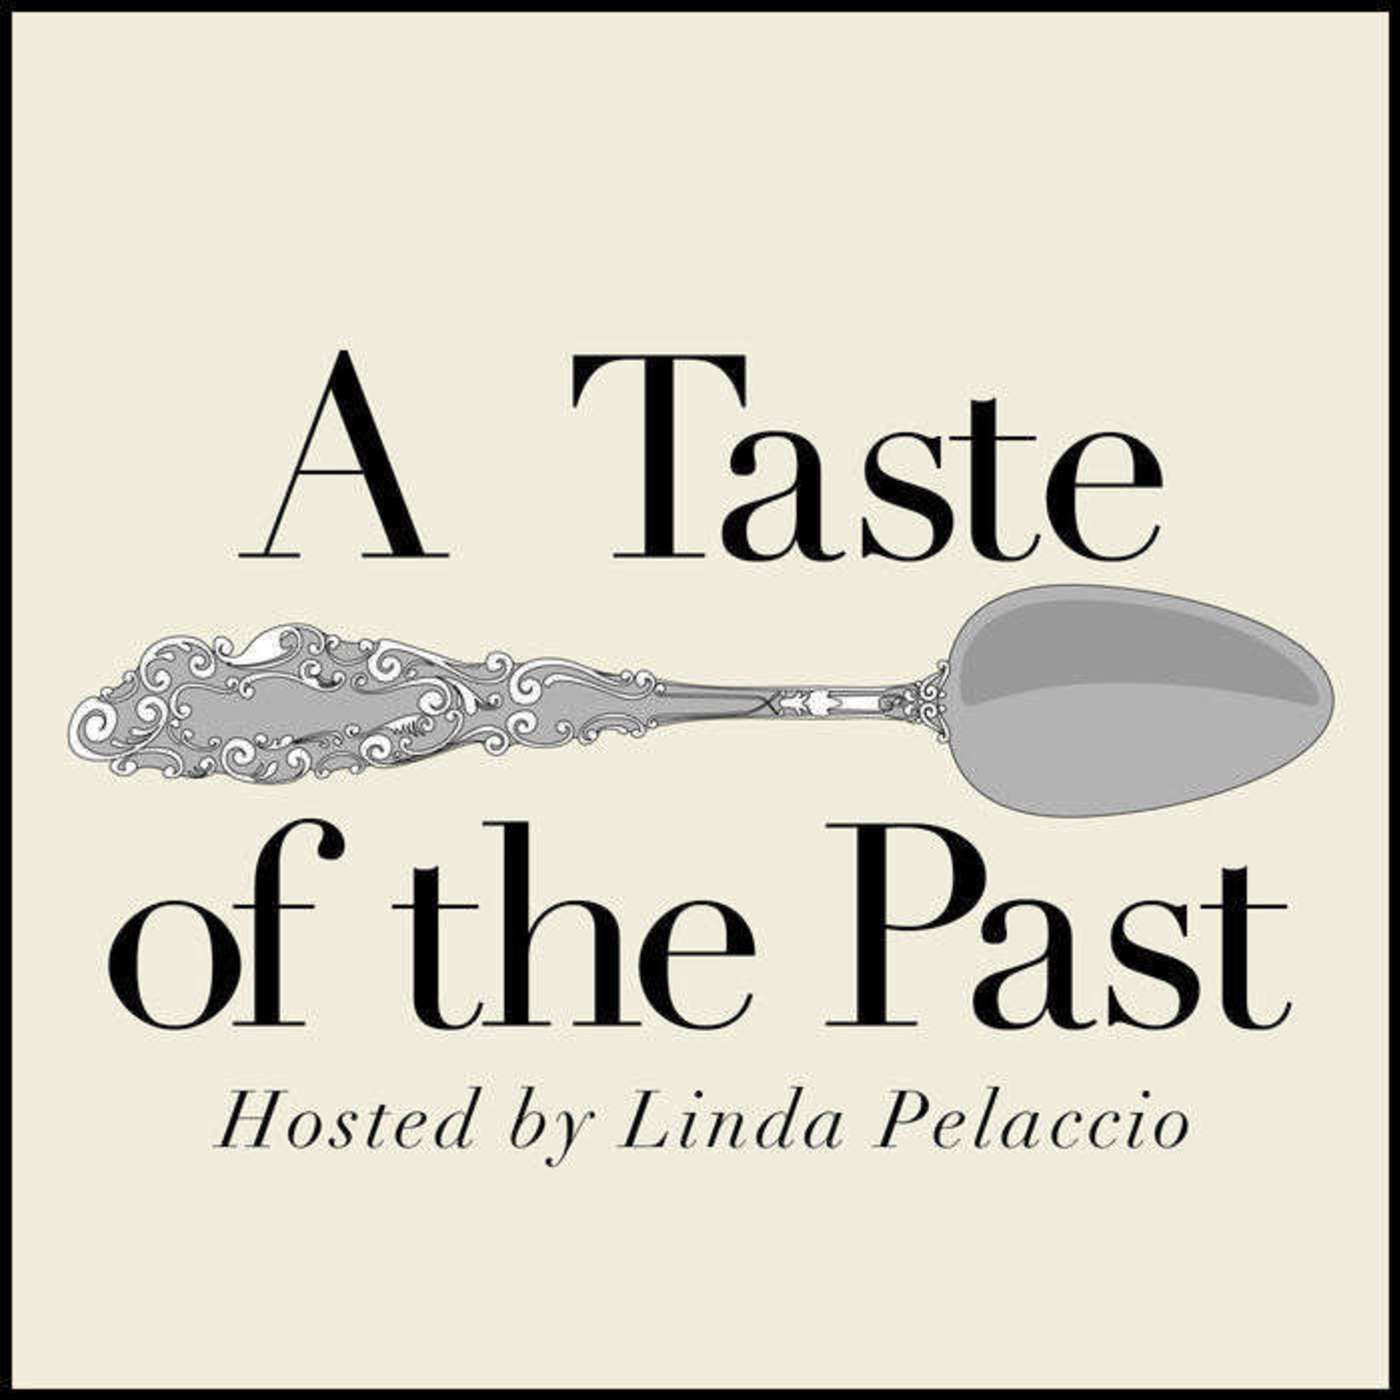 Episode 69: Food Preservation's History and the 21st Century Root Cellar